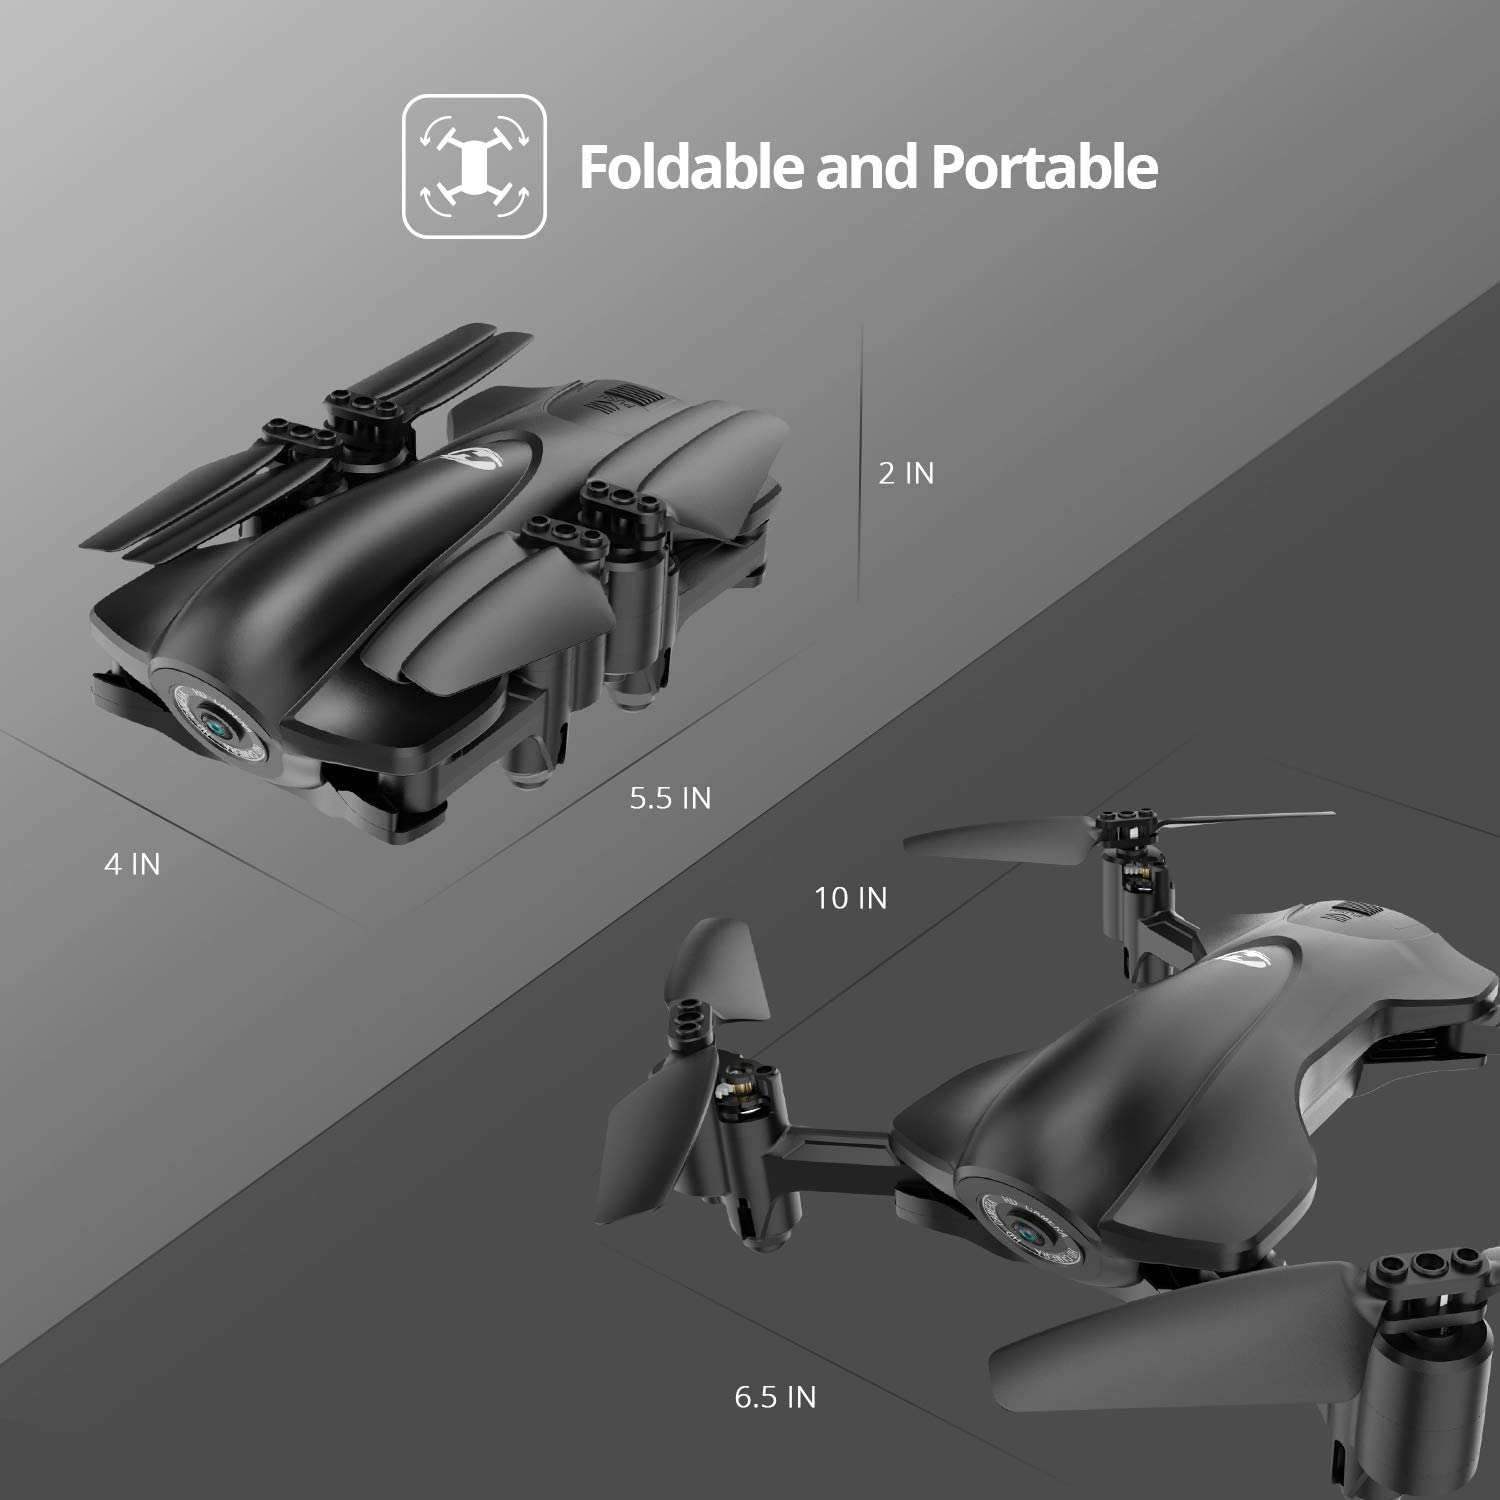 Holy Stone HS165 foldable pocket drone is at #5 for best drones under 150 dollars